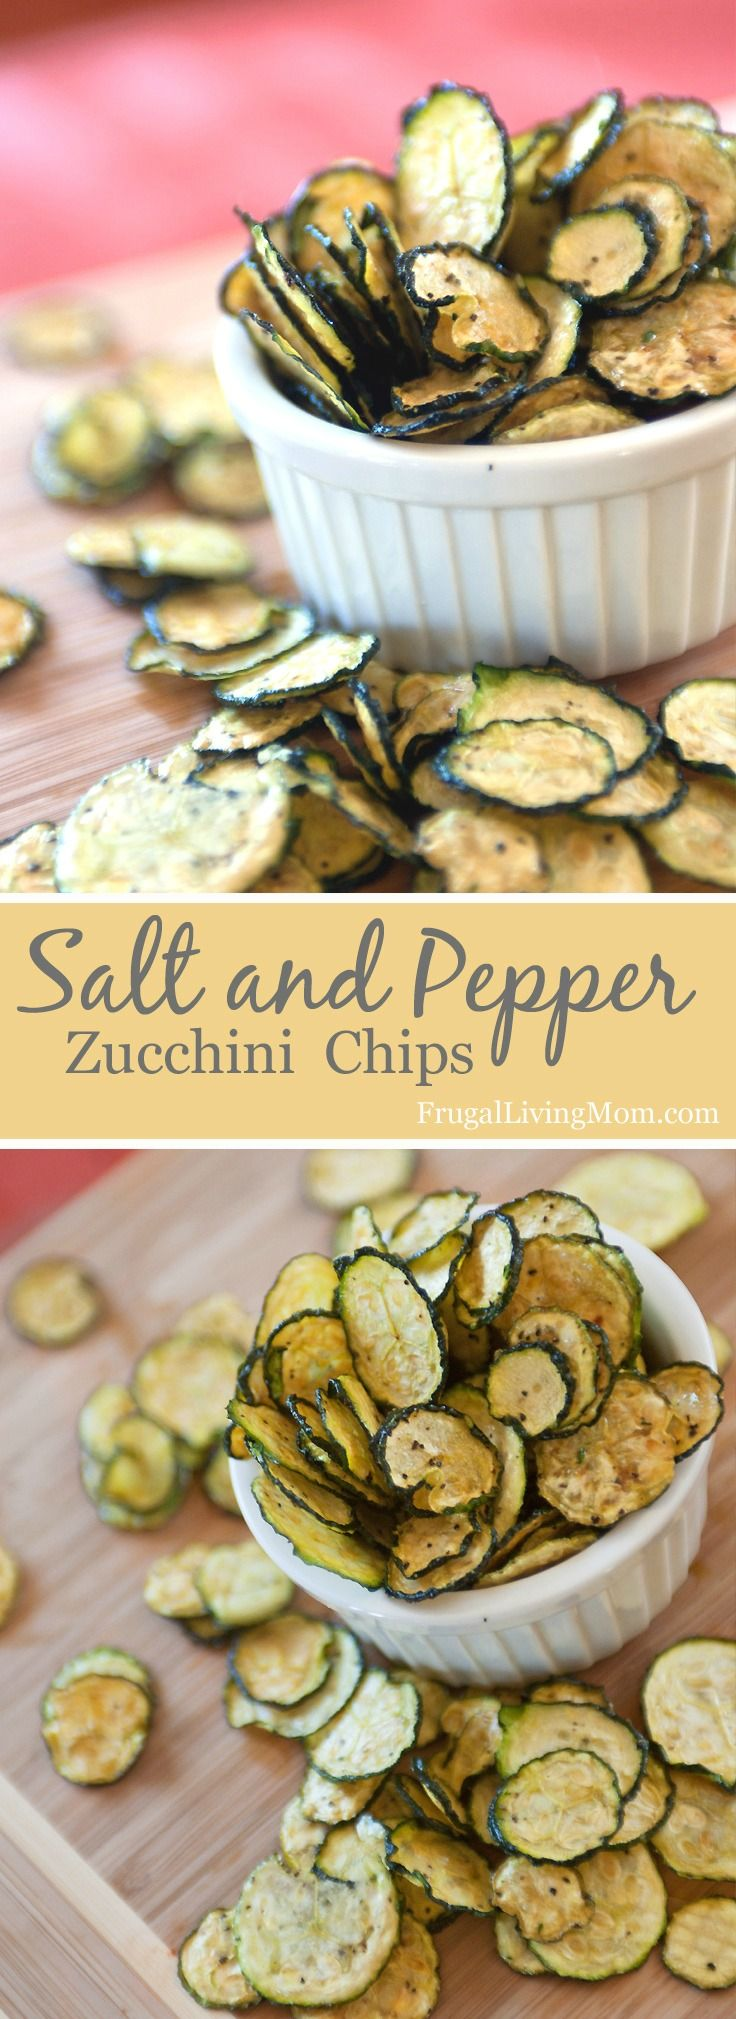 Zucchini Chips mit Salz und Pfeffer   Salt and Pepper Zucchini Chips!  Super yummy and #healthy.  You can make these with a dehydrator or in the oven